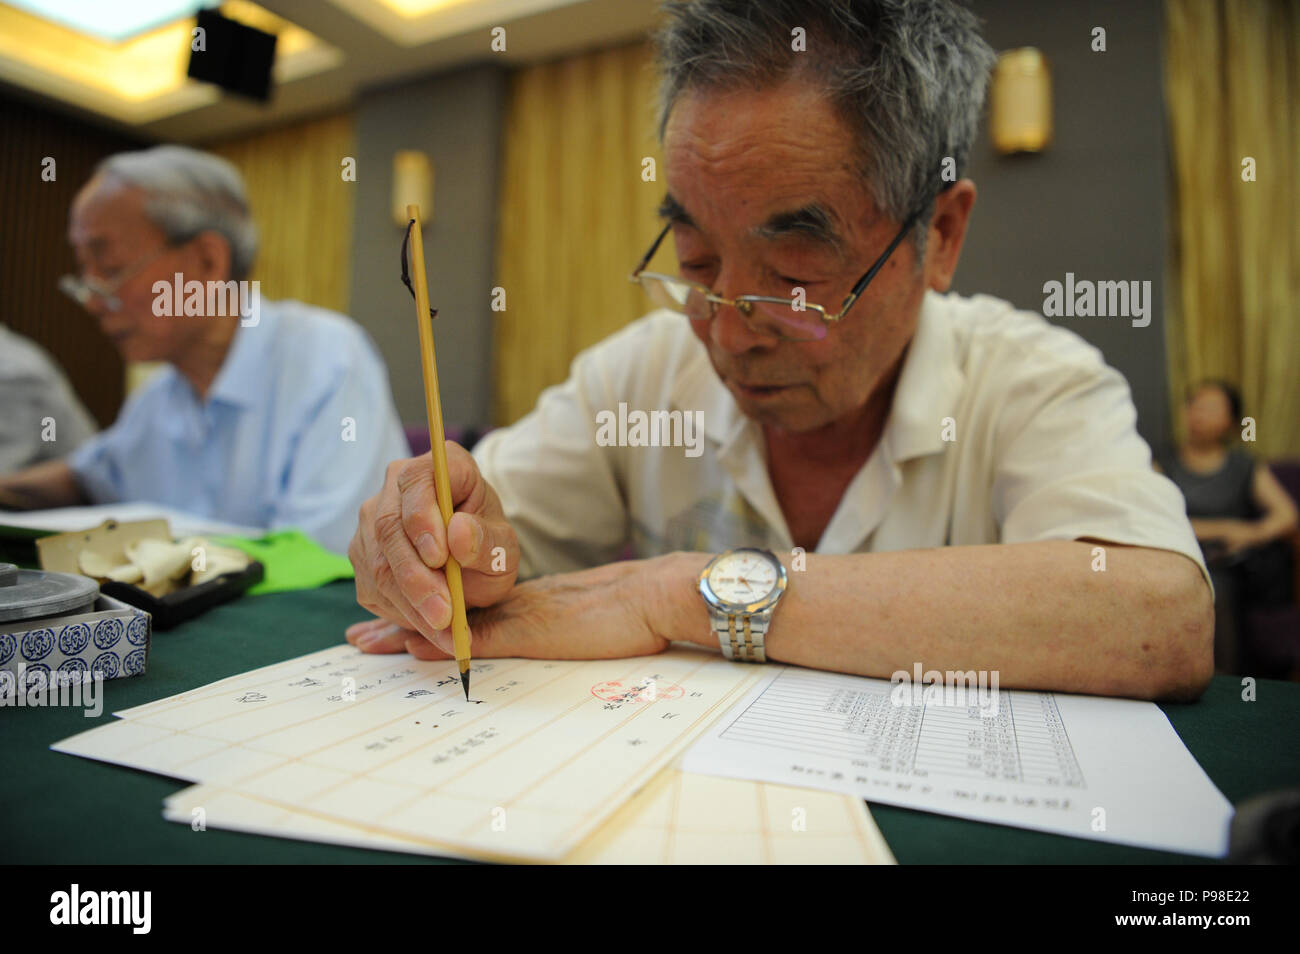 Xi'an, China's Shaanxi Province. 16th July, 2018. Yang Mingtang, a retired teacher from Shaanxi Normal University, writes an admission letter with Chinese writing brush in Xi'an, northwest China's Shaanxi Province, July 16, 2018. Around 4,500 admission letters written by representatives of alumni and retired teachers from Shaanxi Normal University will be delivered to freshmen. The hand-written admission letter has become a feature of Shaanxi Normal University since 2007 Credit: Zhang Bowen/Xinhua/Alamy Live News - Stock Image